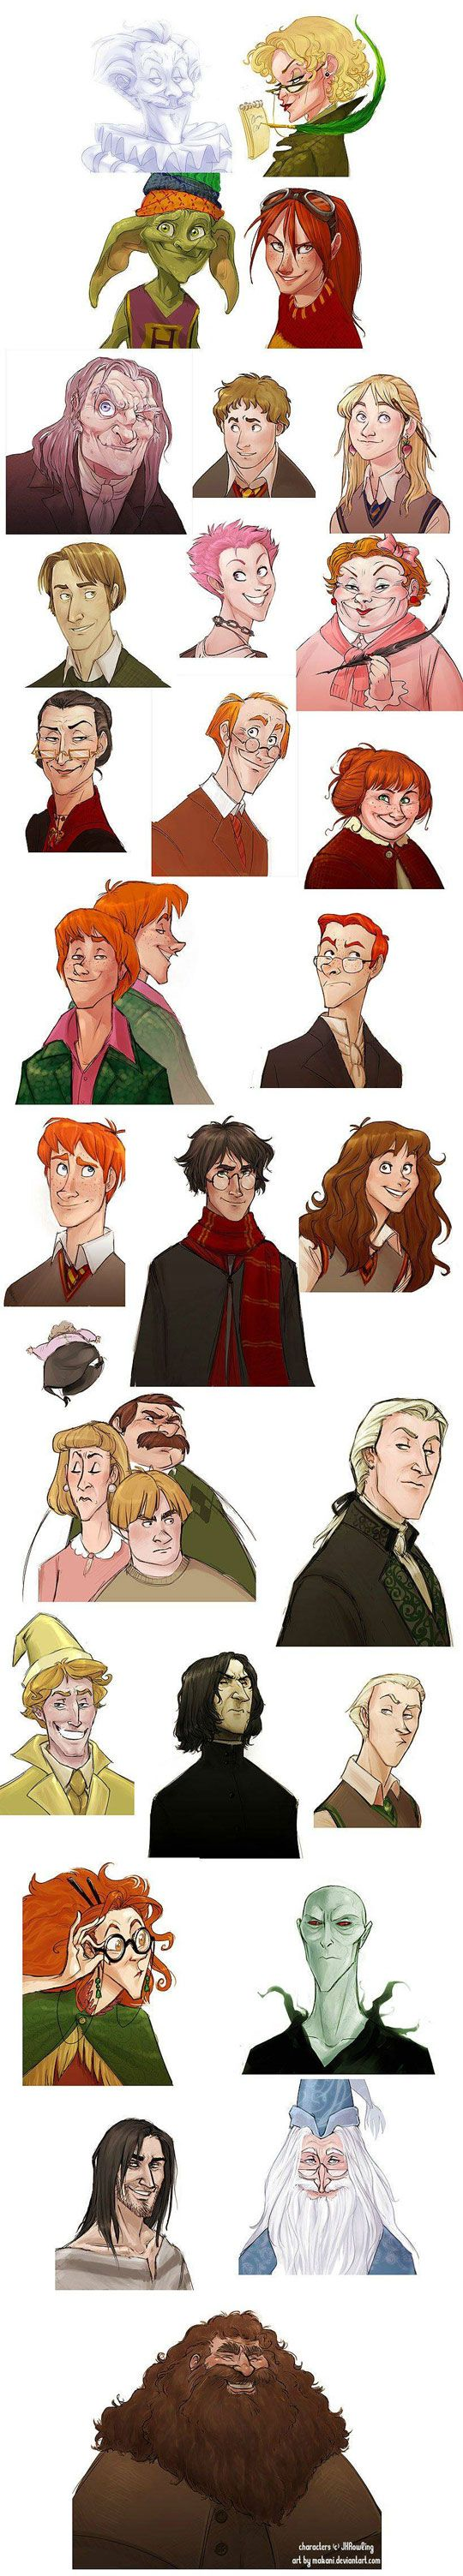 The cast of Harry Potter, in the style of Disney characters.